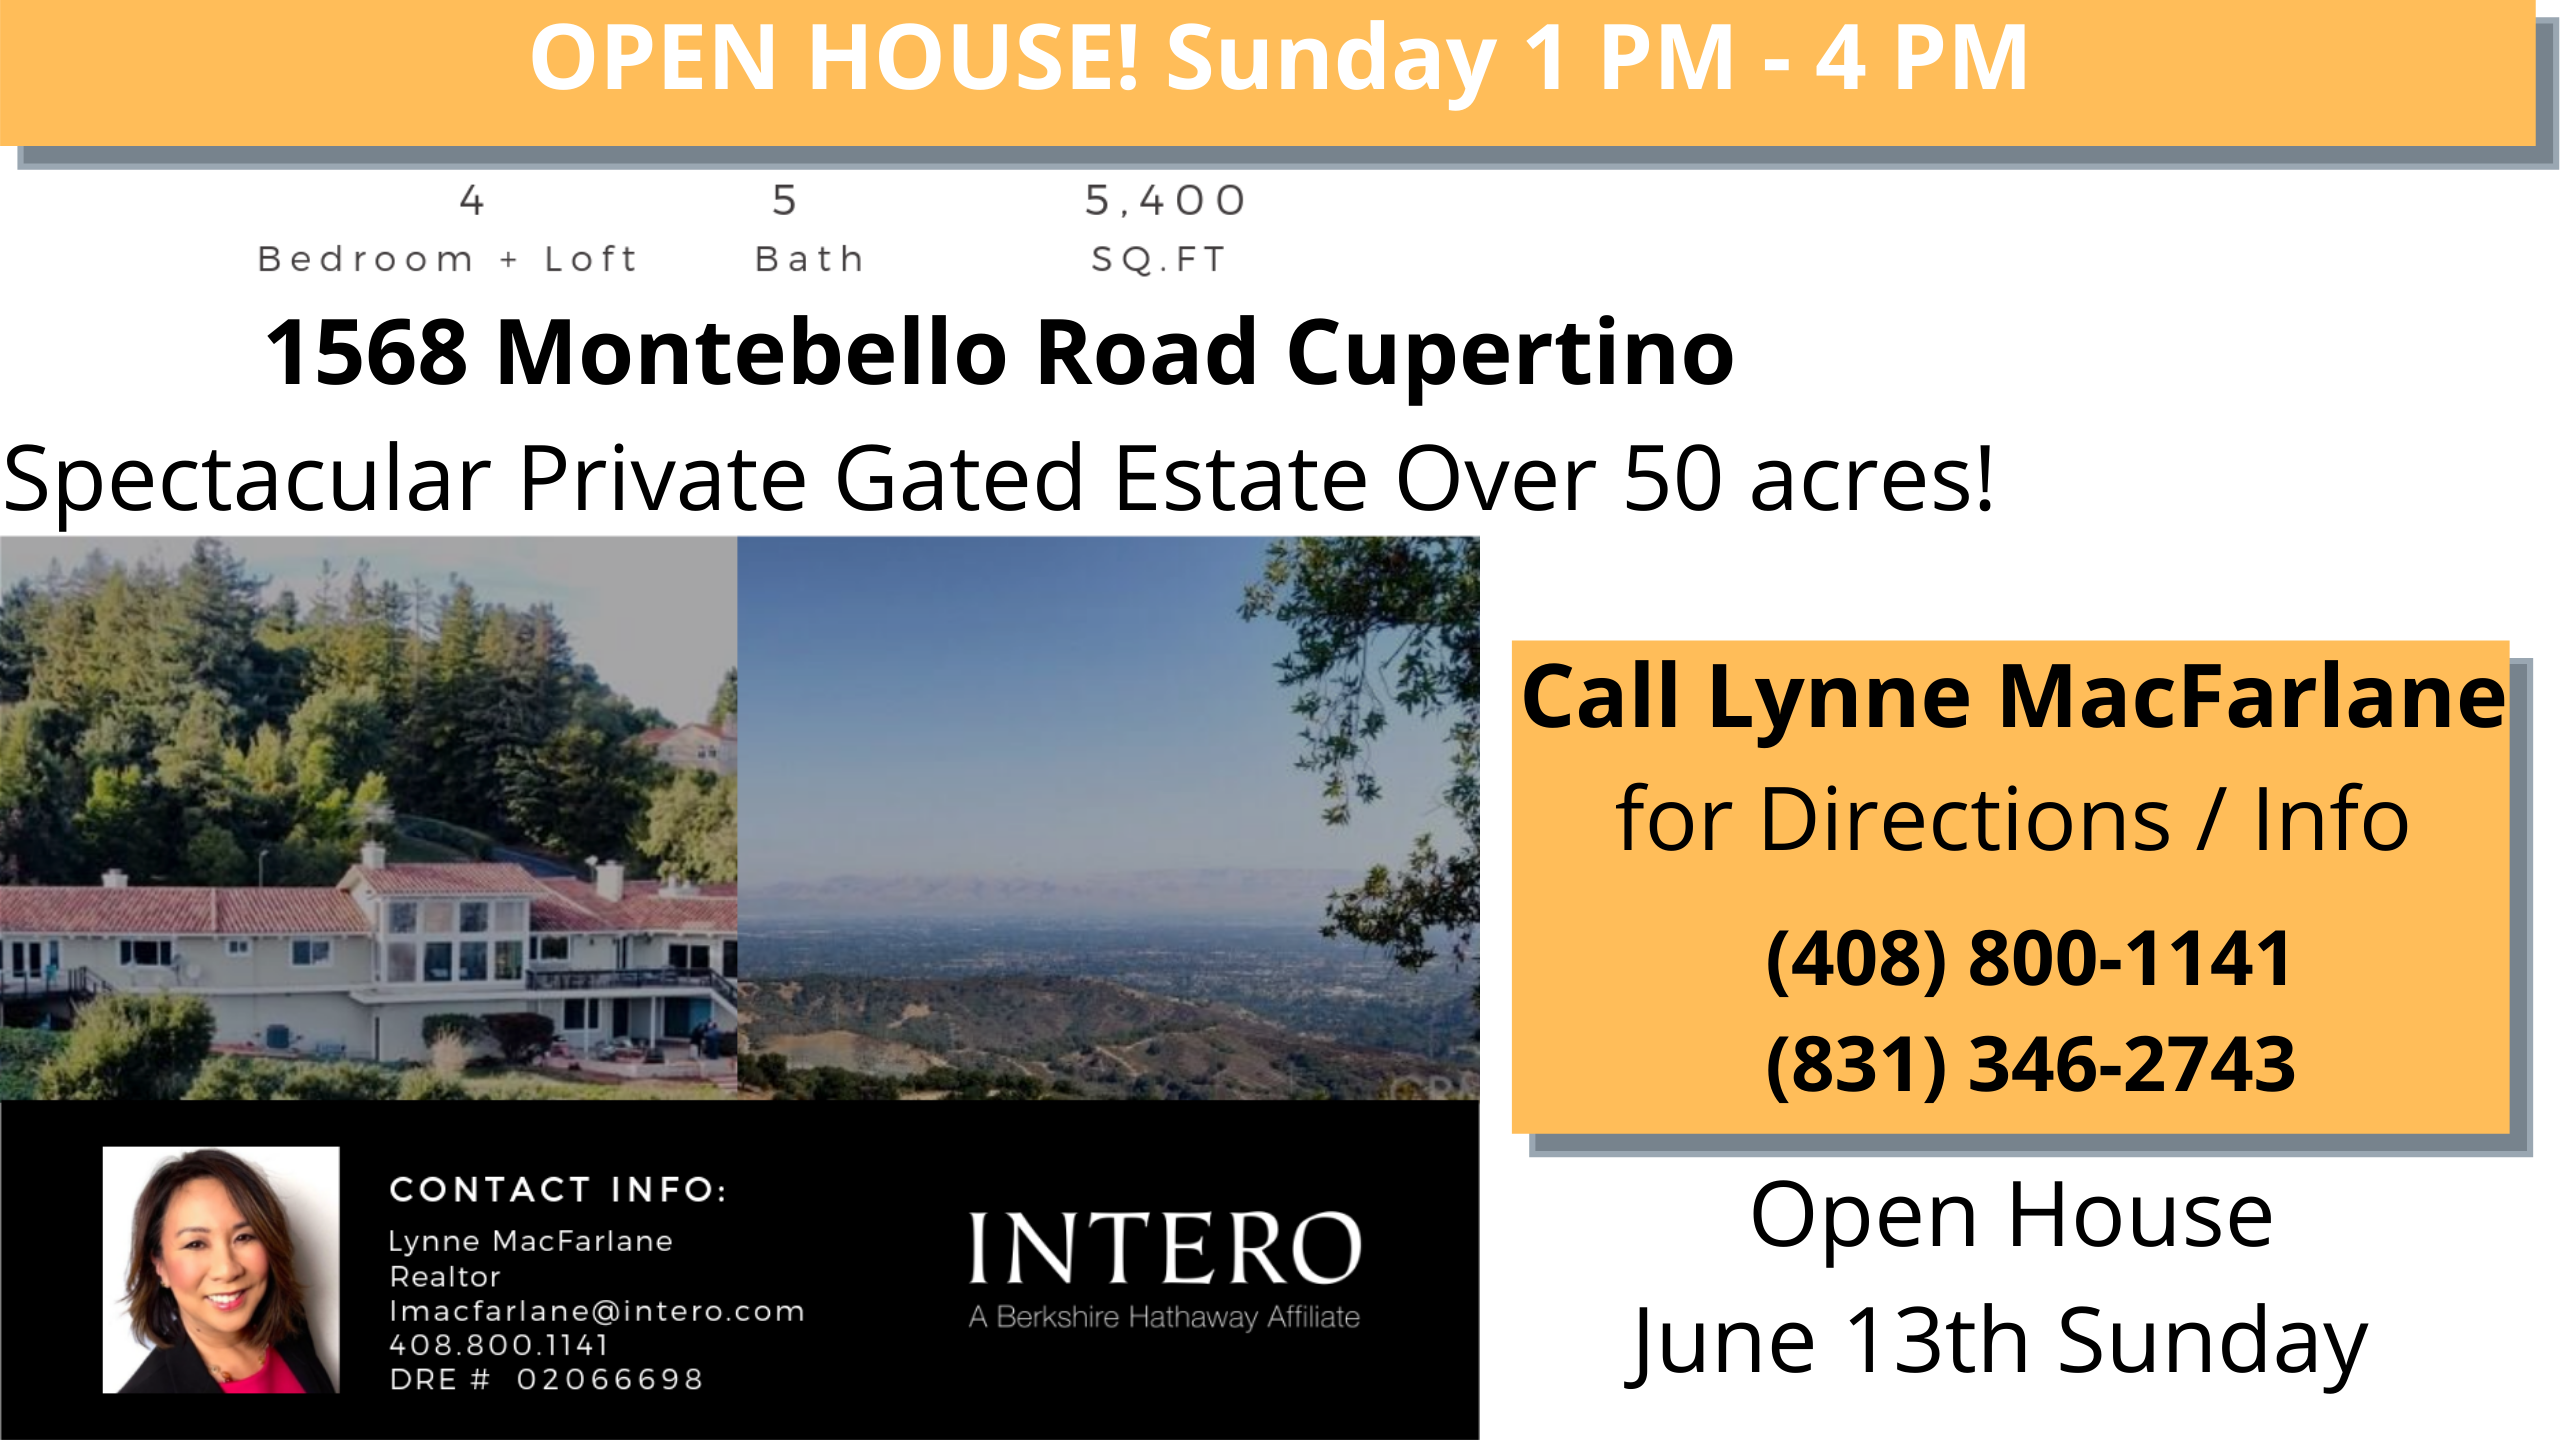 Lynne MacFarlane Homes hosts spectacular Cupertino private estate with 51 acres